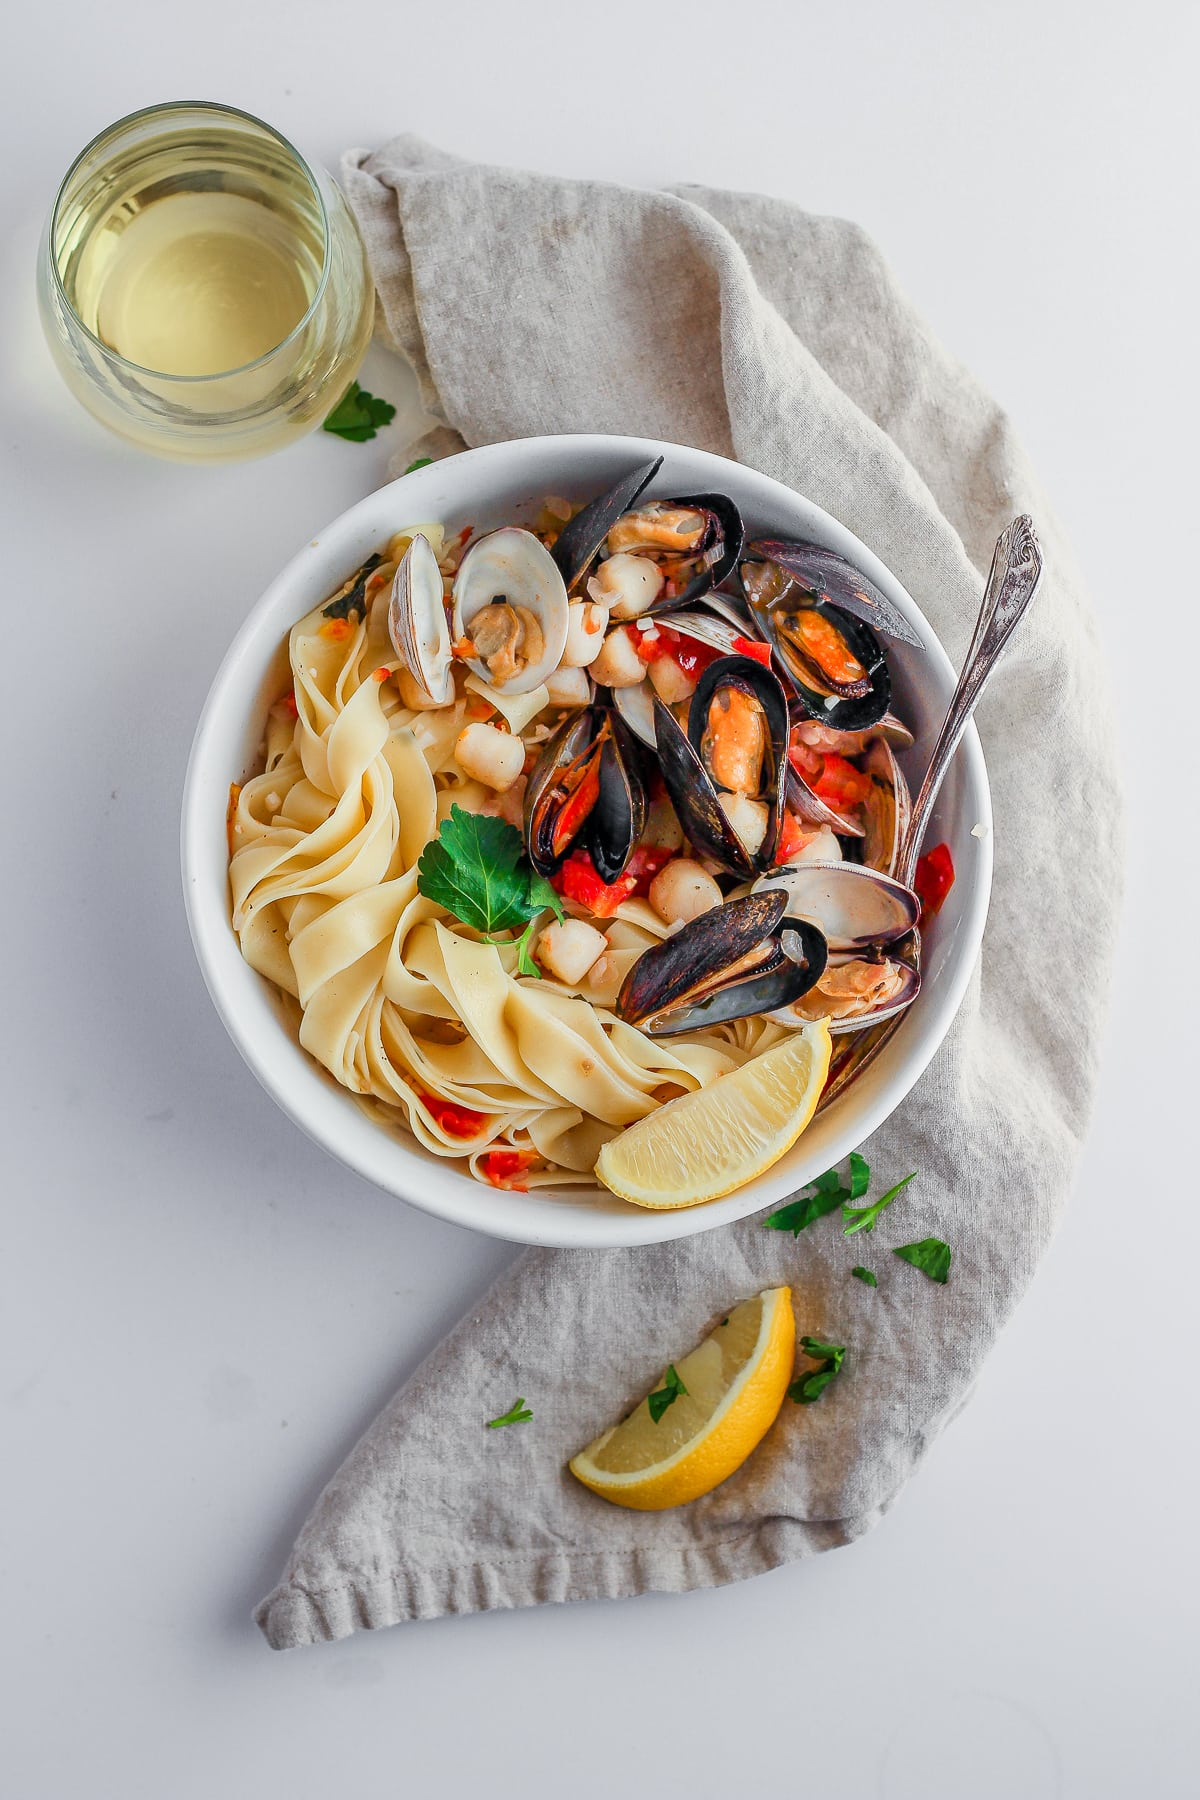 Fettuccine with Clams, Mussels and Bay Scallops